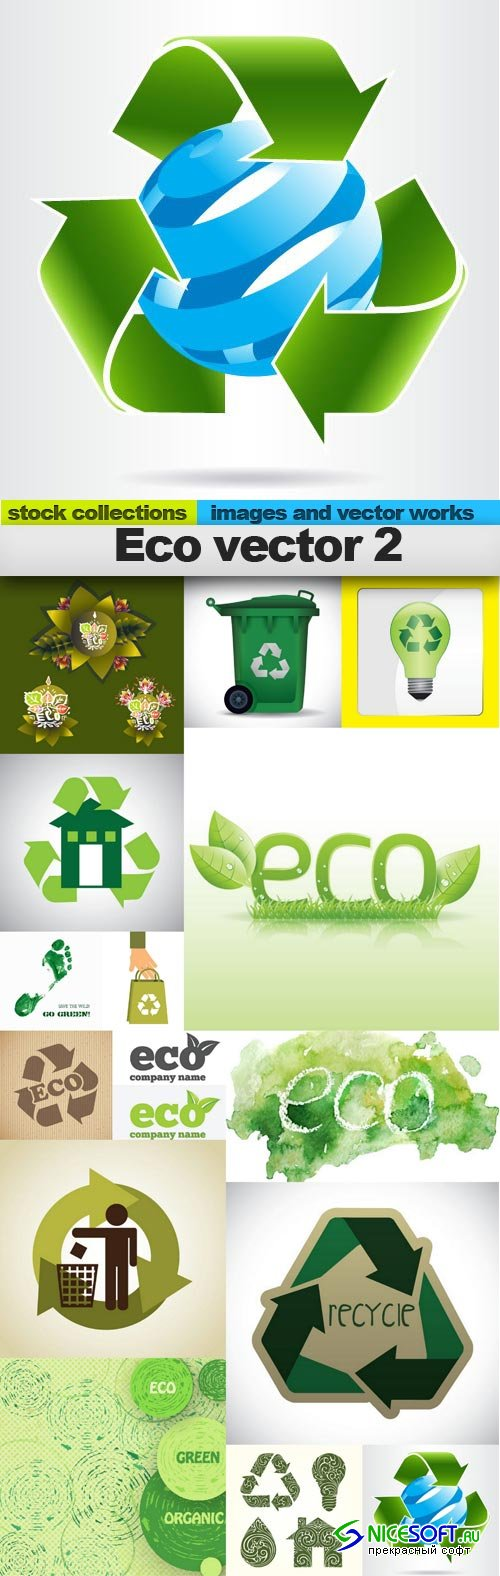 Eco vector, 15 x EPS